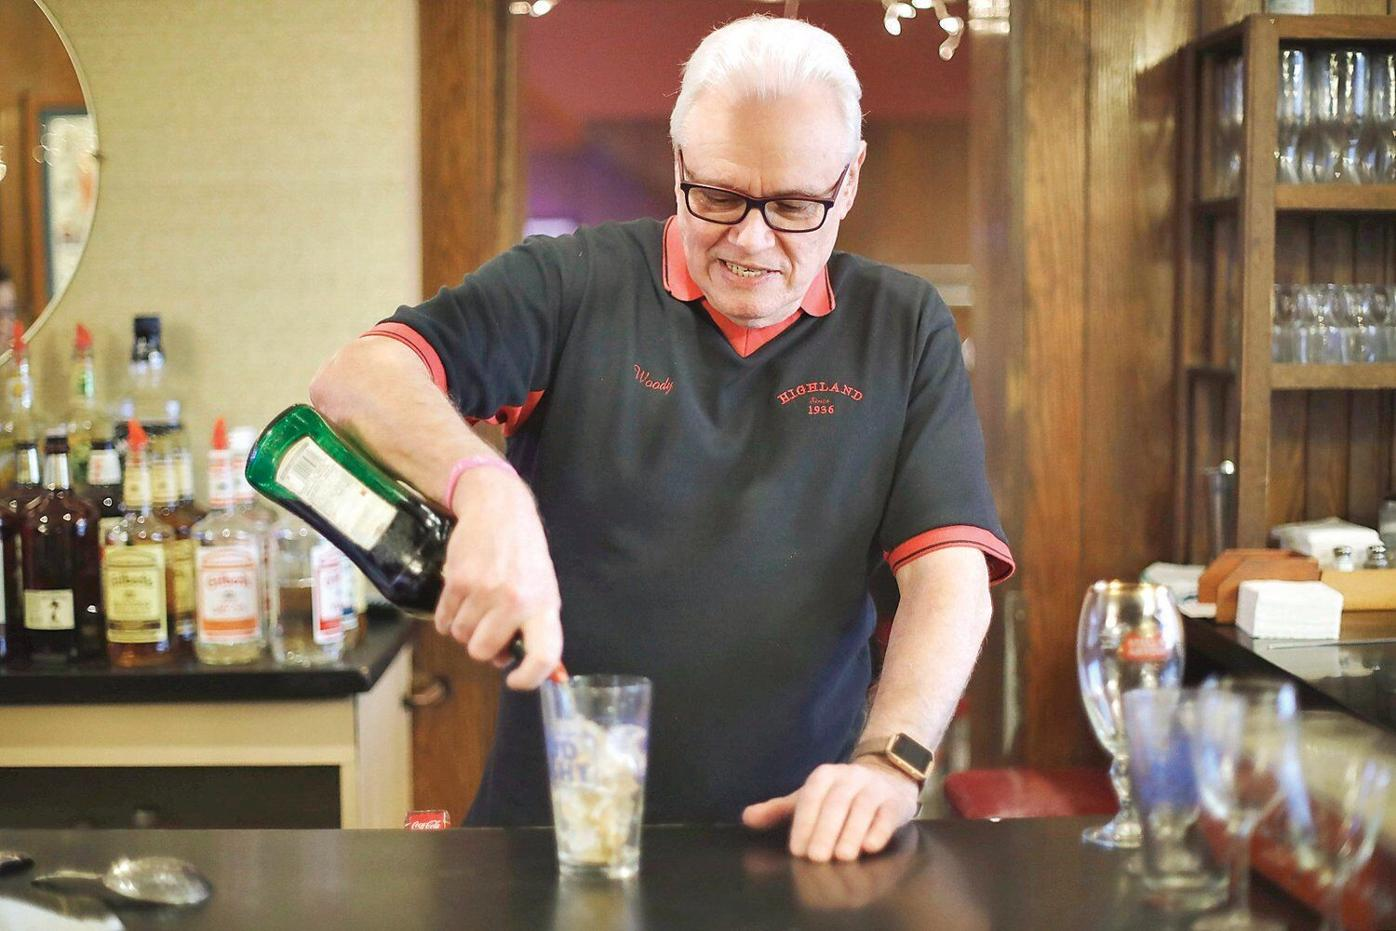 Straight Up: Richard Wood at The Highland, like the bar he tends, keeps it classic